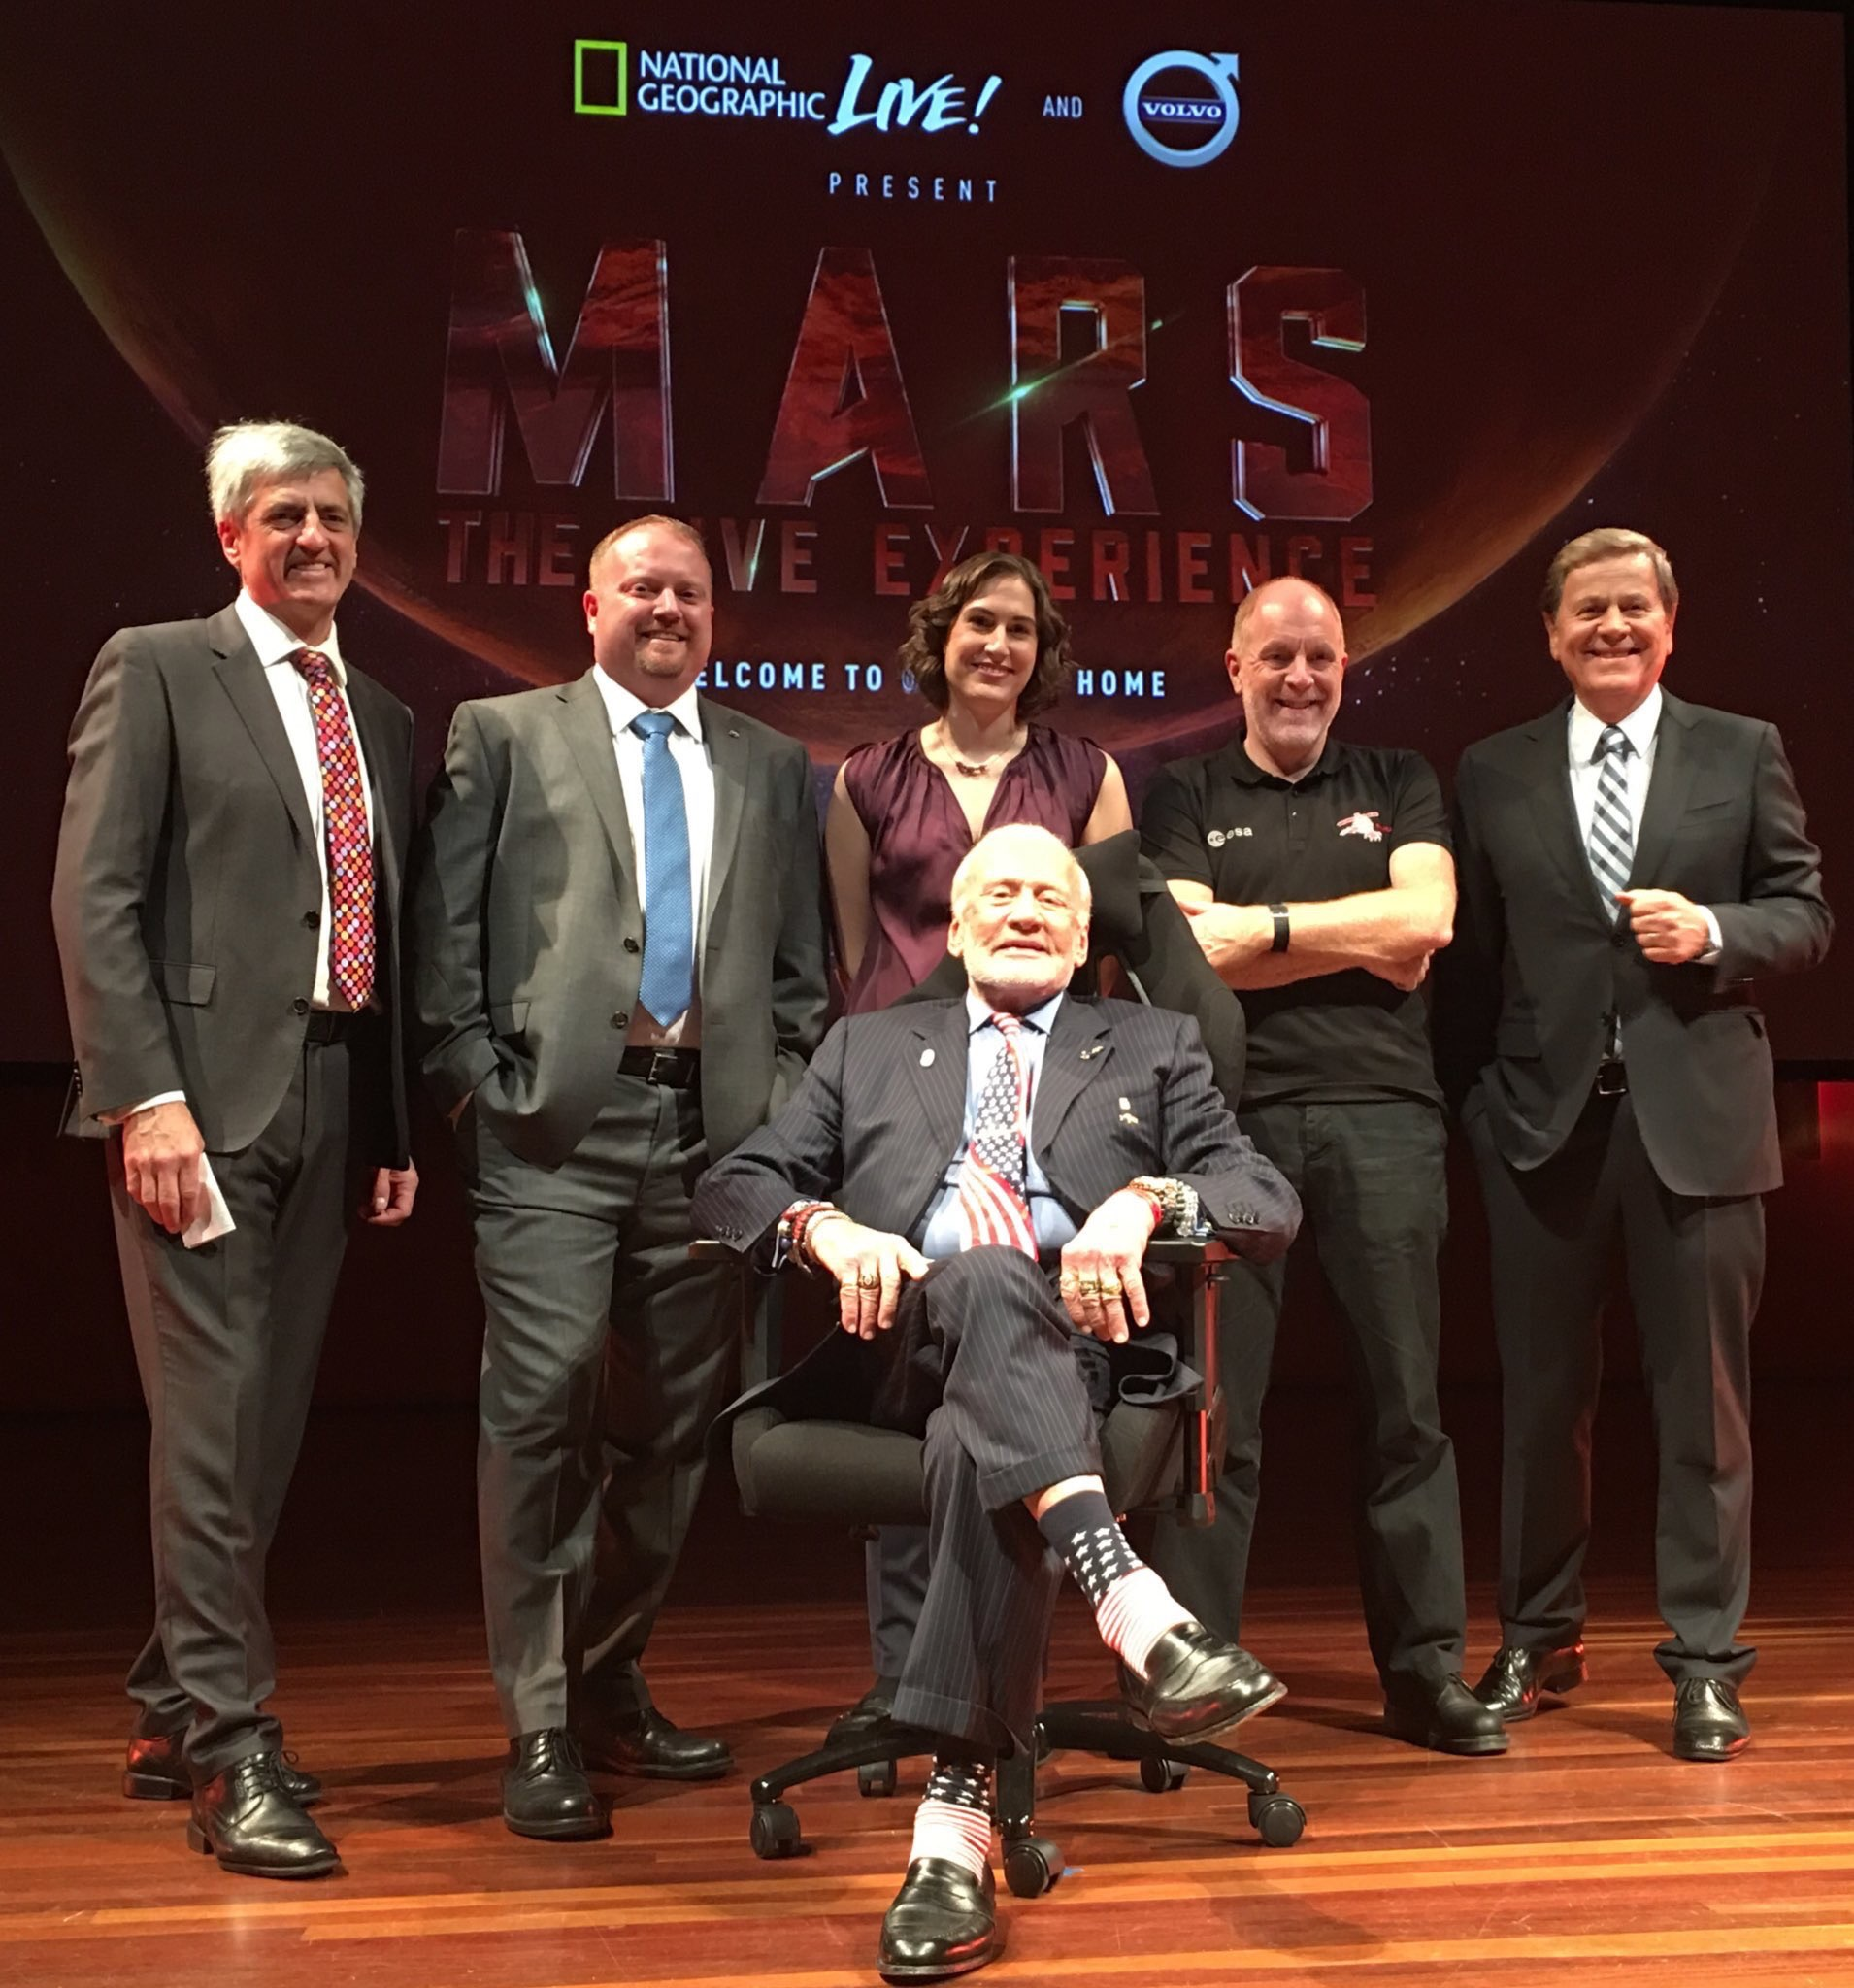 Jason Crusan, Dr Katherine Mack, Prof Mark McCaughrean, Ray Martin and Buzz prior to the Canberra performance 7Nov2016.